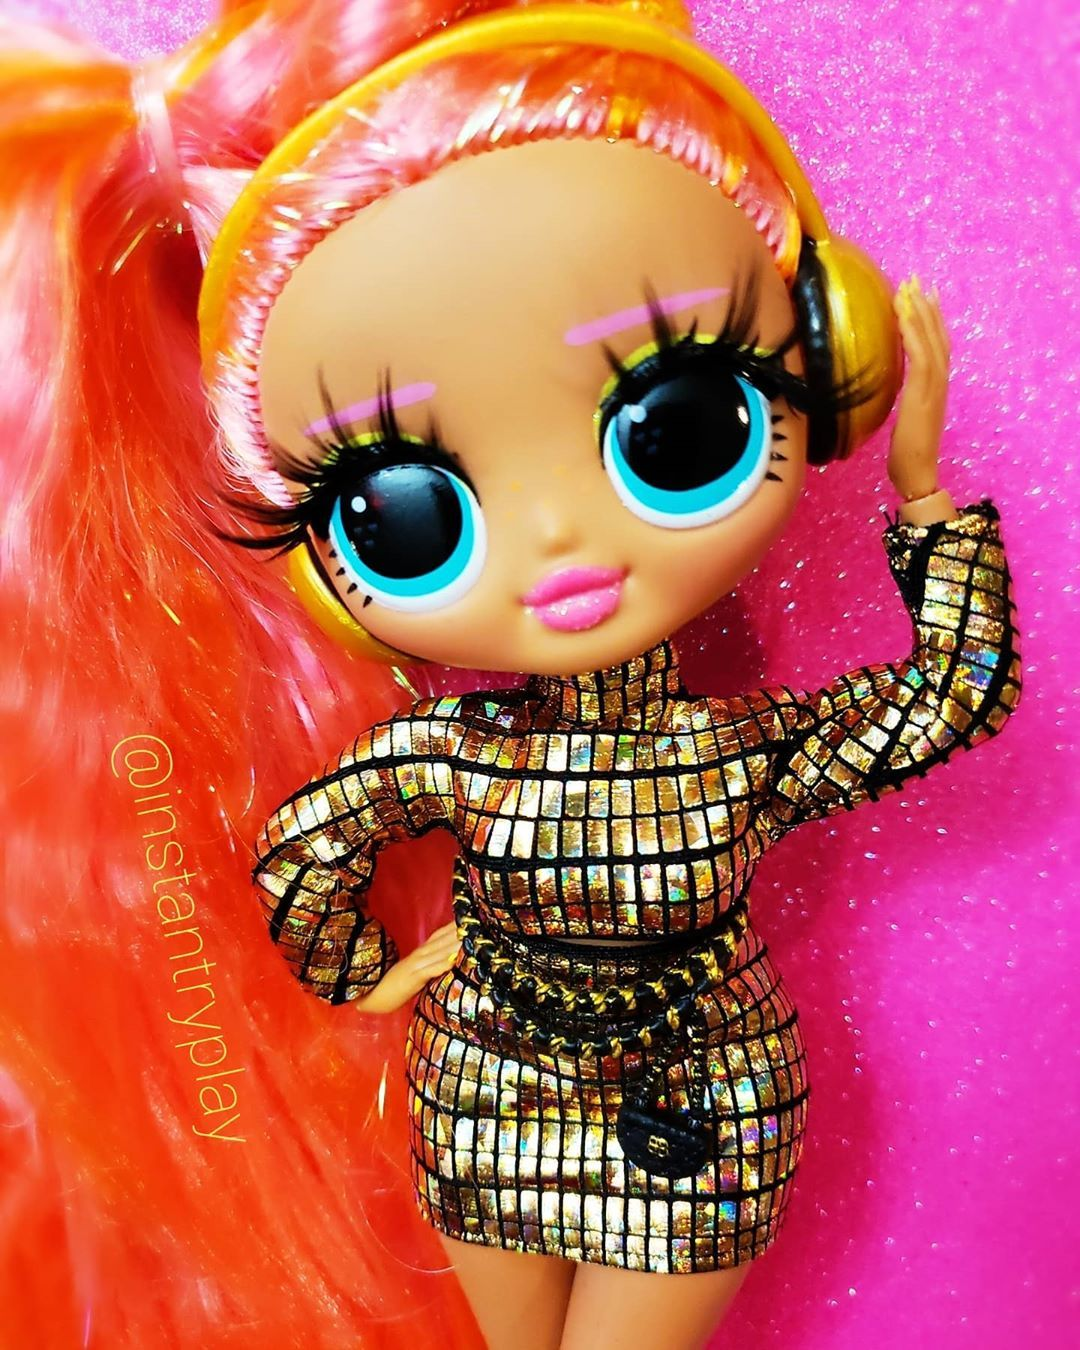 Another Amazing Hauntcoutureatelier Outfit Lolsurpriseomgdazzle Shopunboxrepeat Lolsurpriseomglights Toystagr Lol Dolls Pretty Dolls Beautiful Dolls